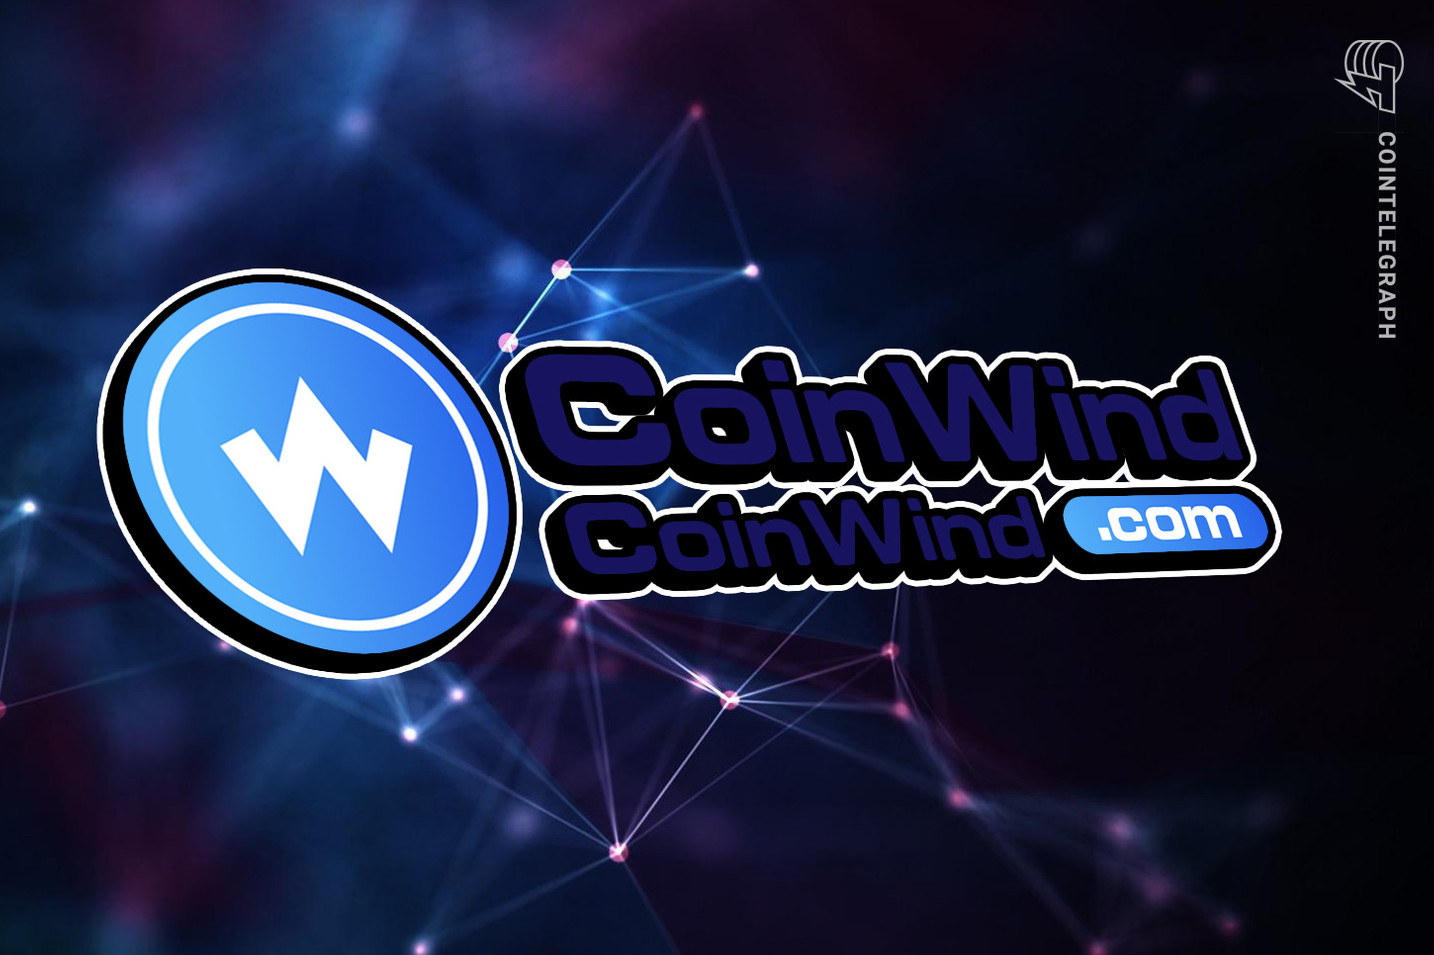 CoinWind integrates Ethereum mainnet and announces COW boardroom pools